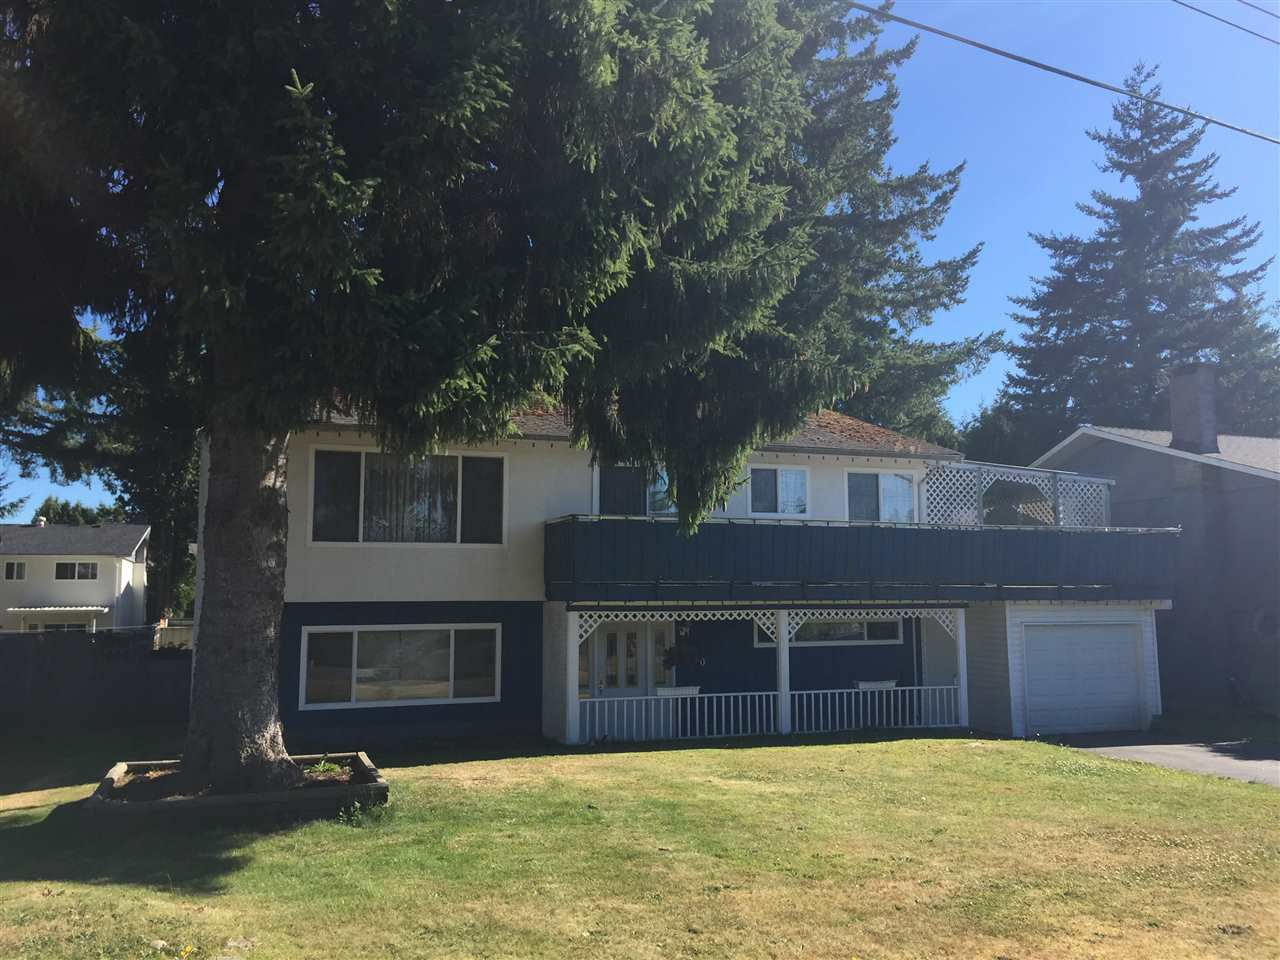 Main Photo: 11750 92A Avenue in Delta: Annieville House for sale (N. Delta)  : MLS®# R2192775